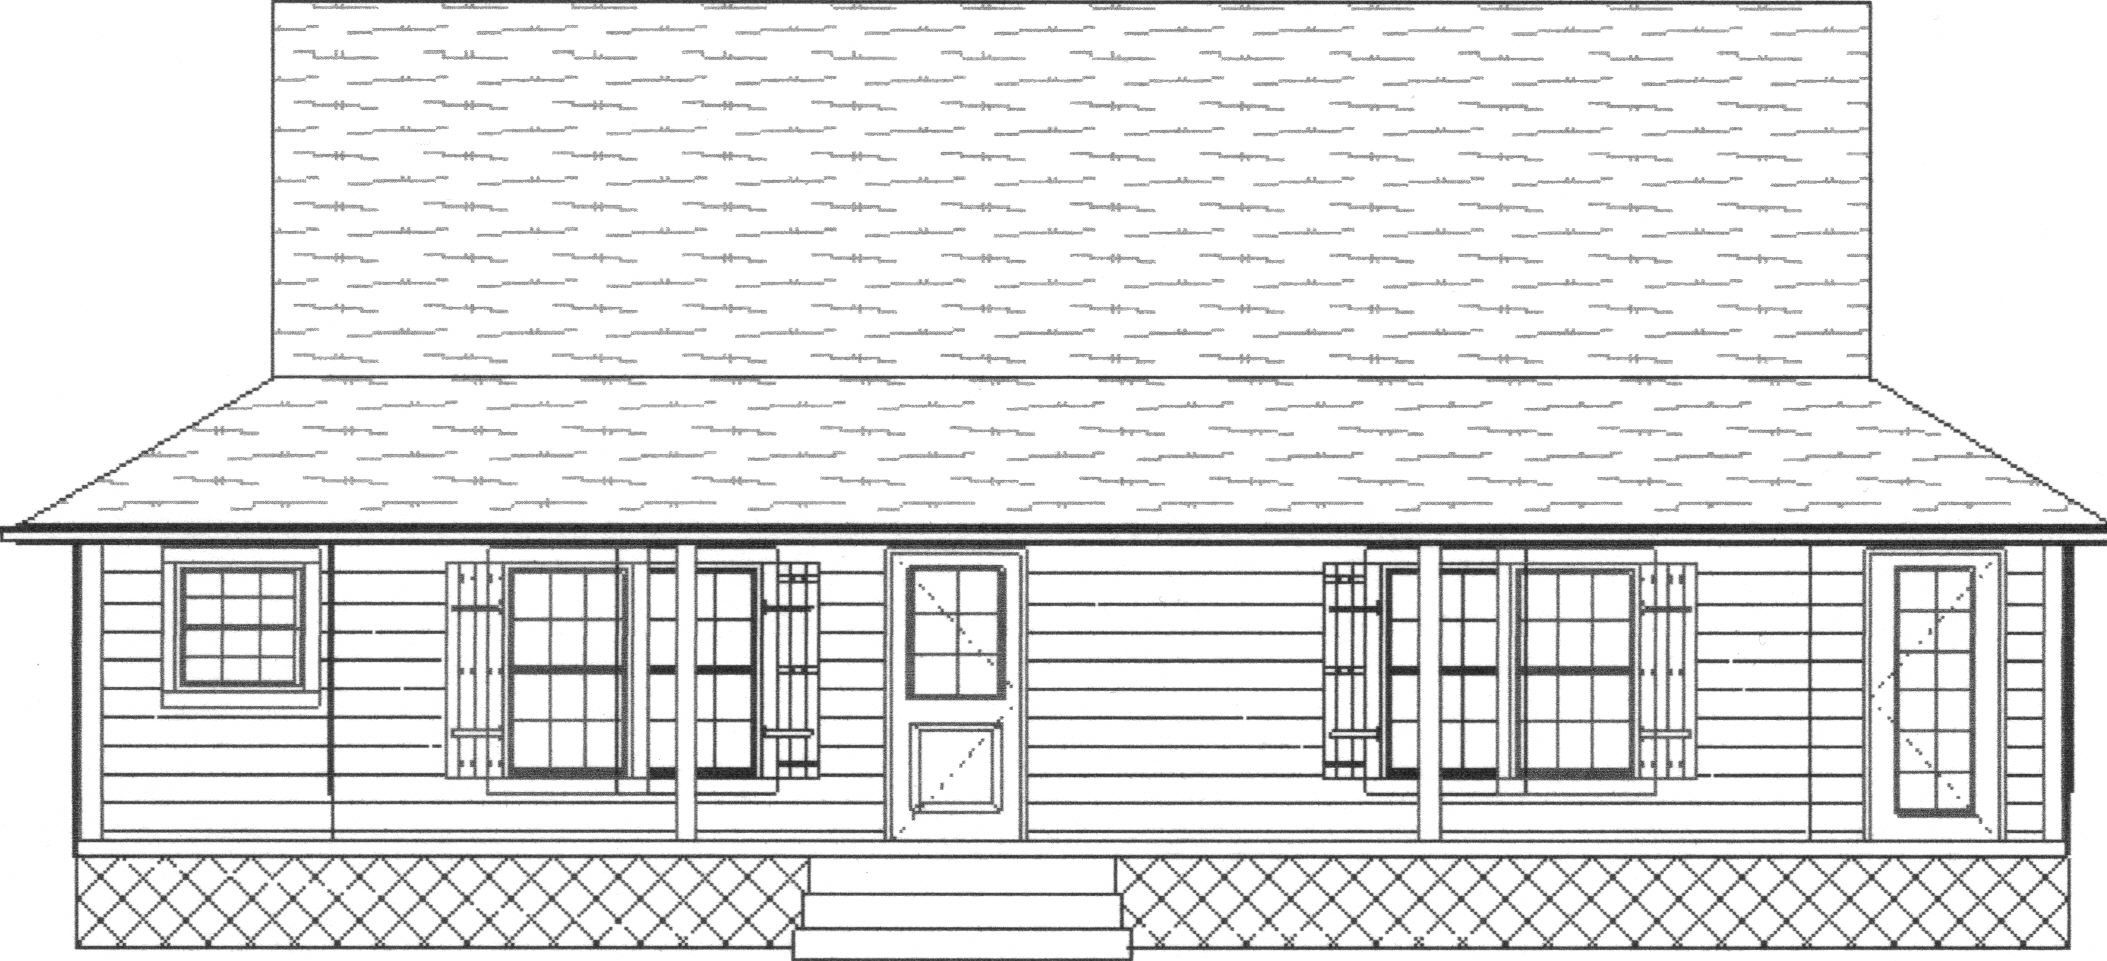 Florida cracker model for Florida cracker house plans wrap around porch